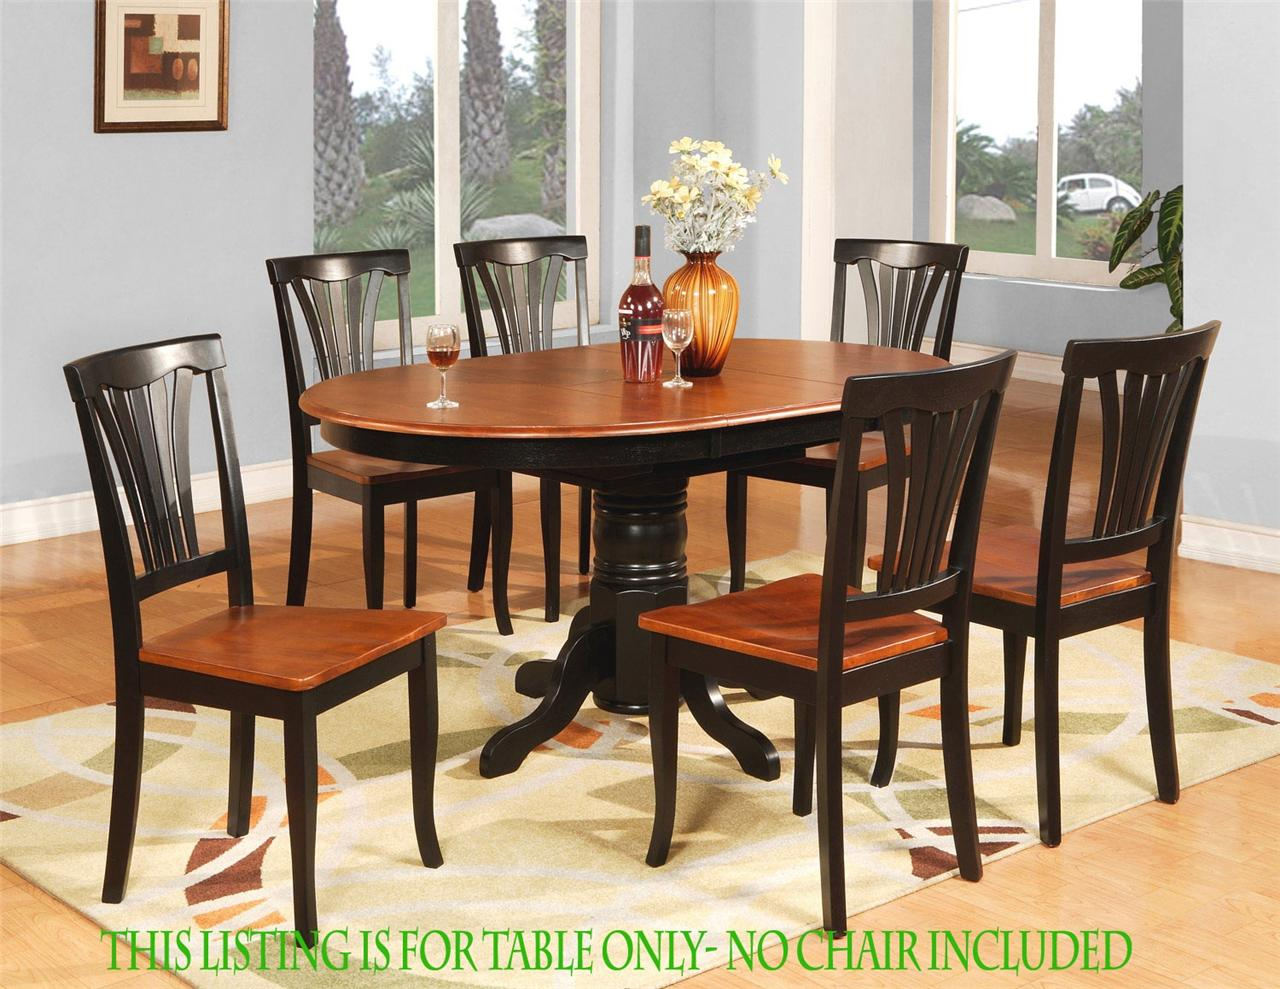 Oval dinette kitchen dining room table only 42 x 60 with for Kitchen dinette sets